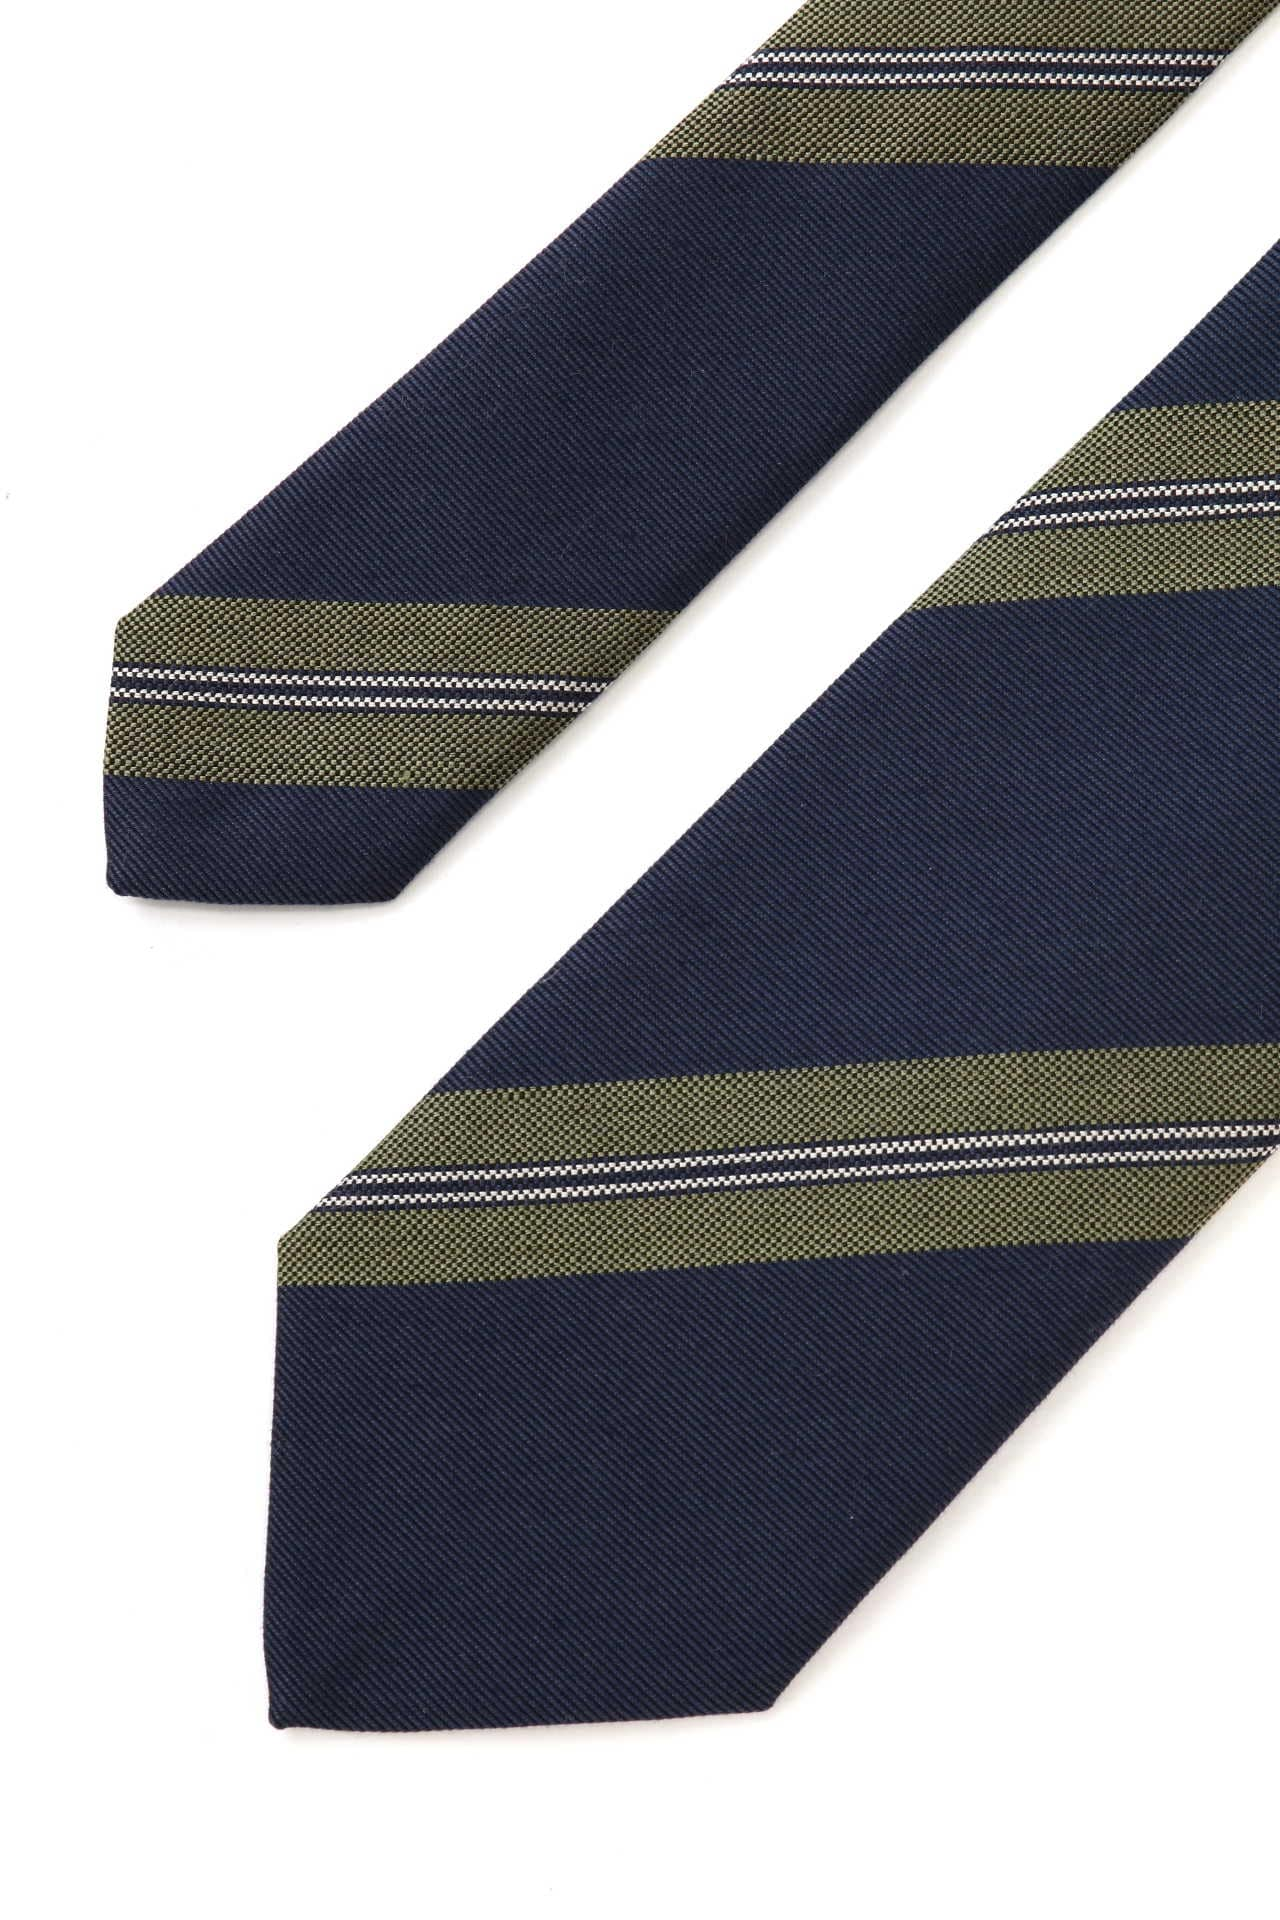 ALTERNATE STRIPE TIE4